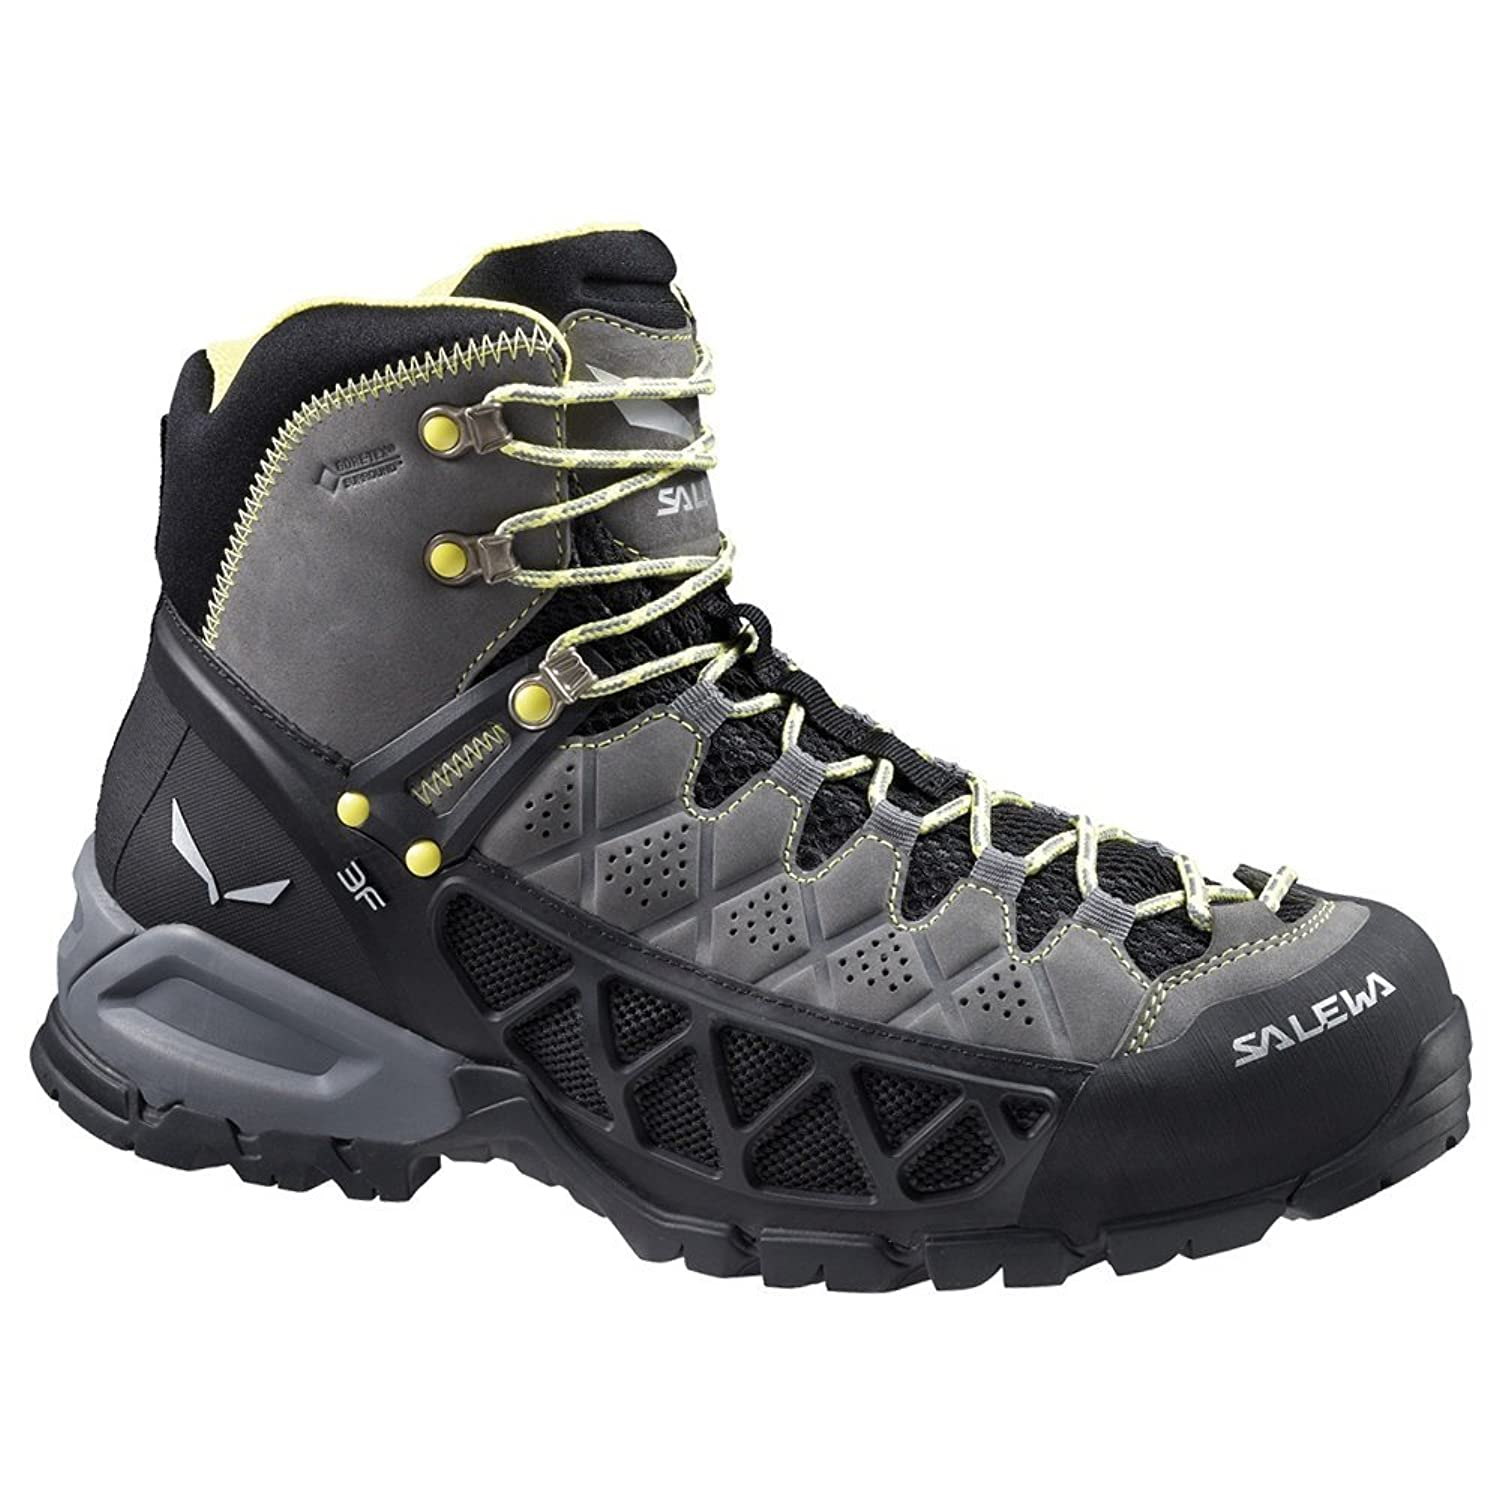 Salewa Men's MS ALP Flow Mid GTX Hiking Shoe